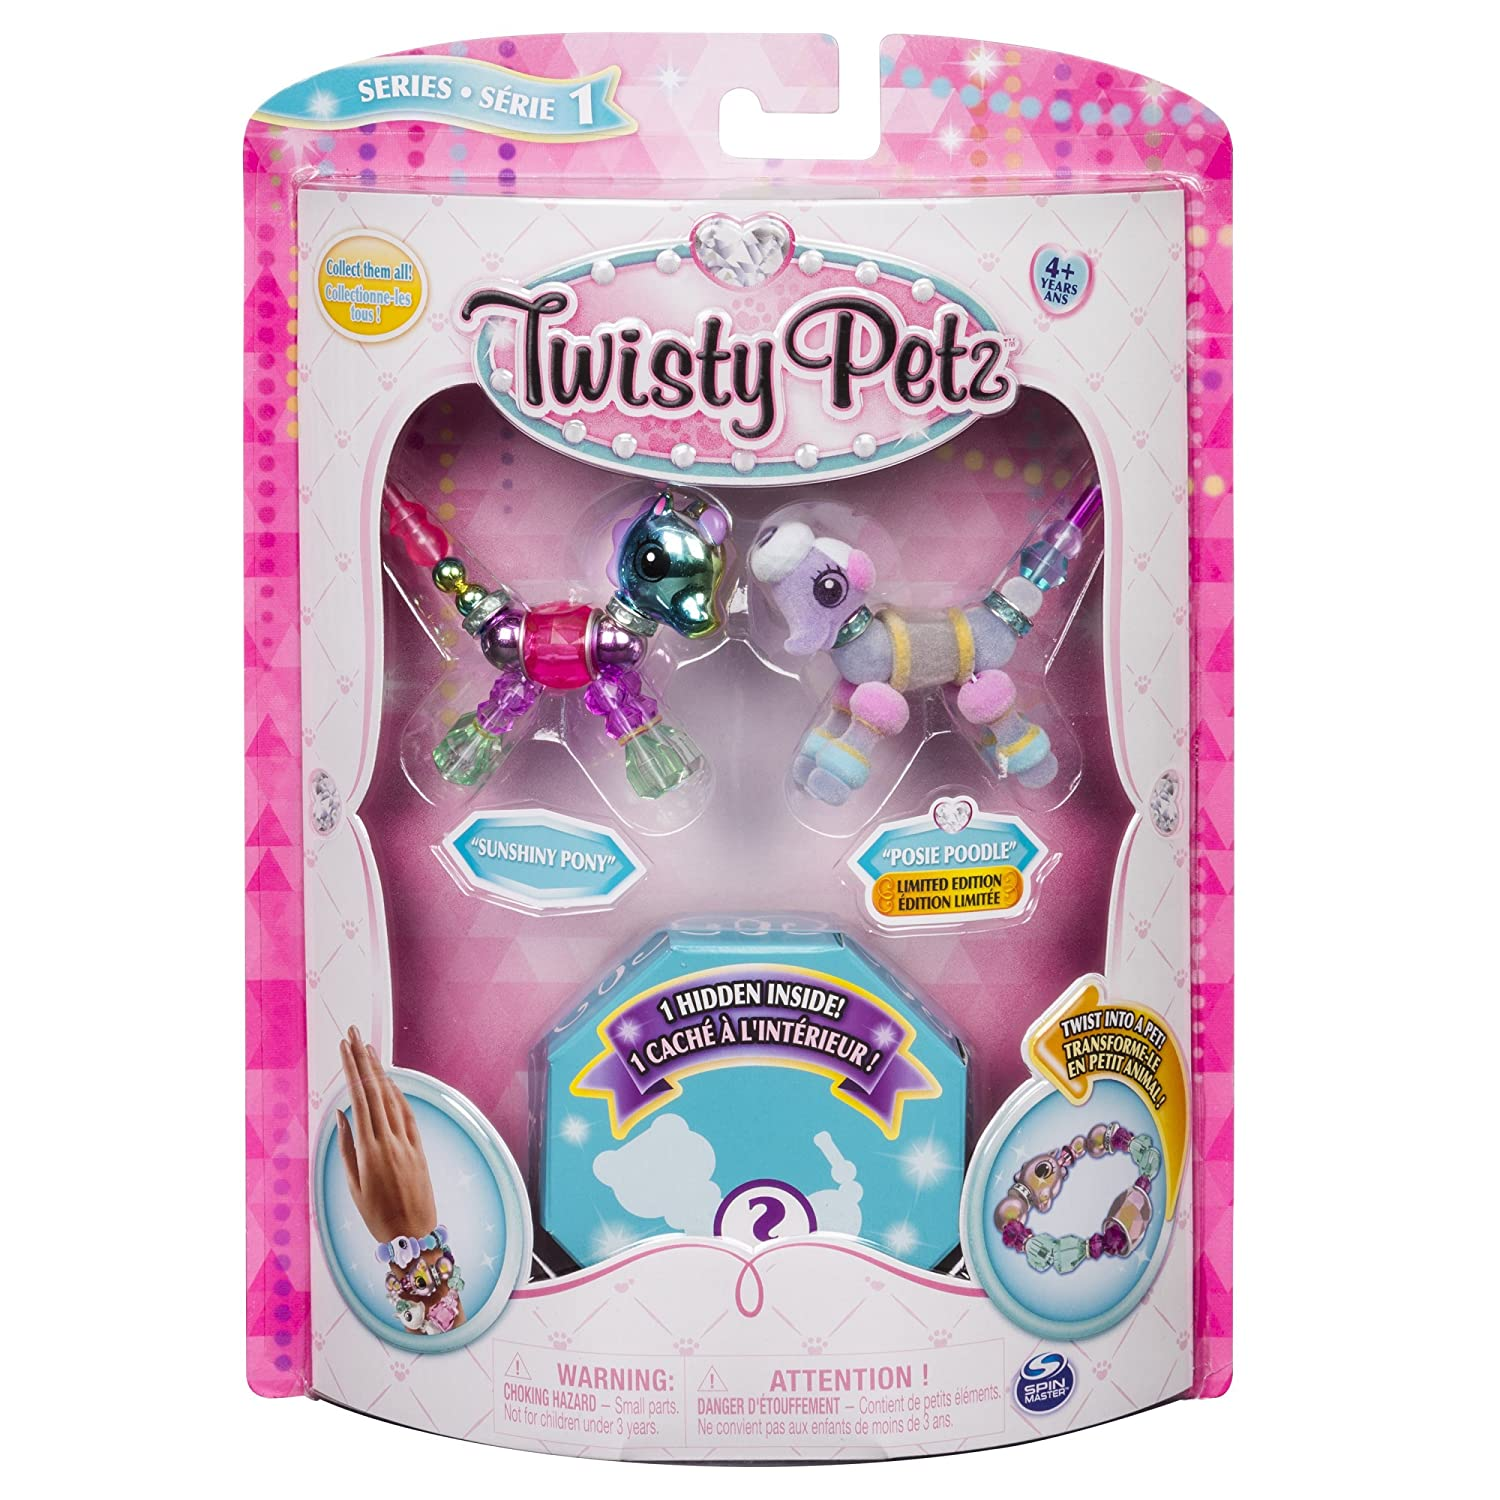 Twisty Petz - 3-Pack - Butterscotch Unicorn, Berry Tales Cheetah and Surprise Collectible Bracelet Set for Kids Spin Master 20100958